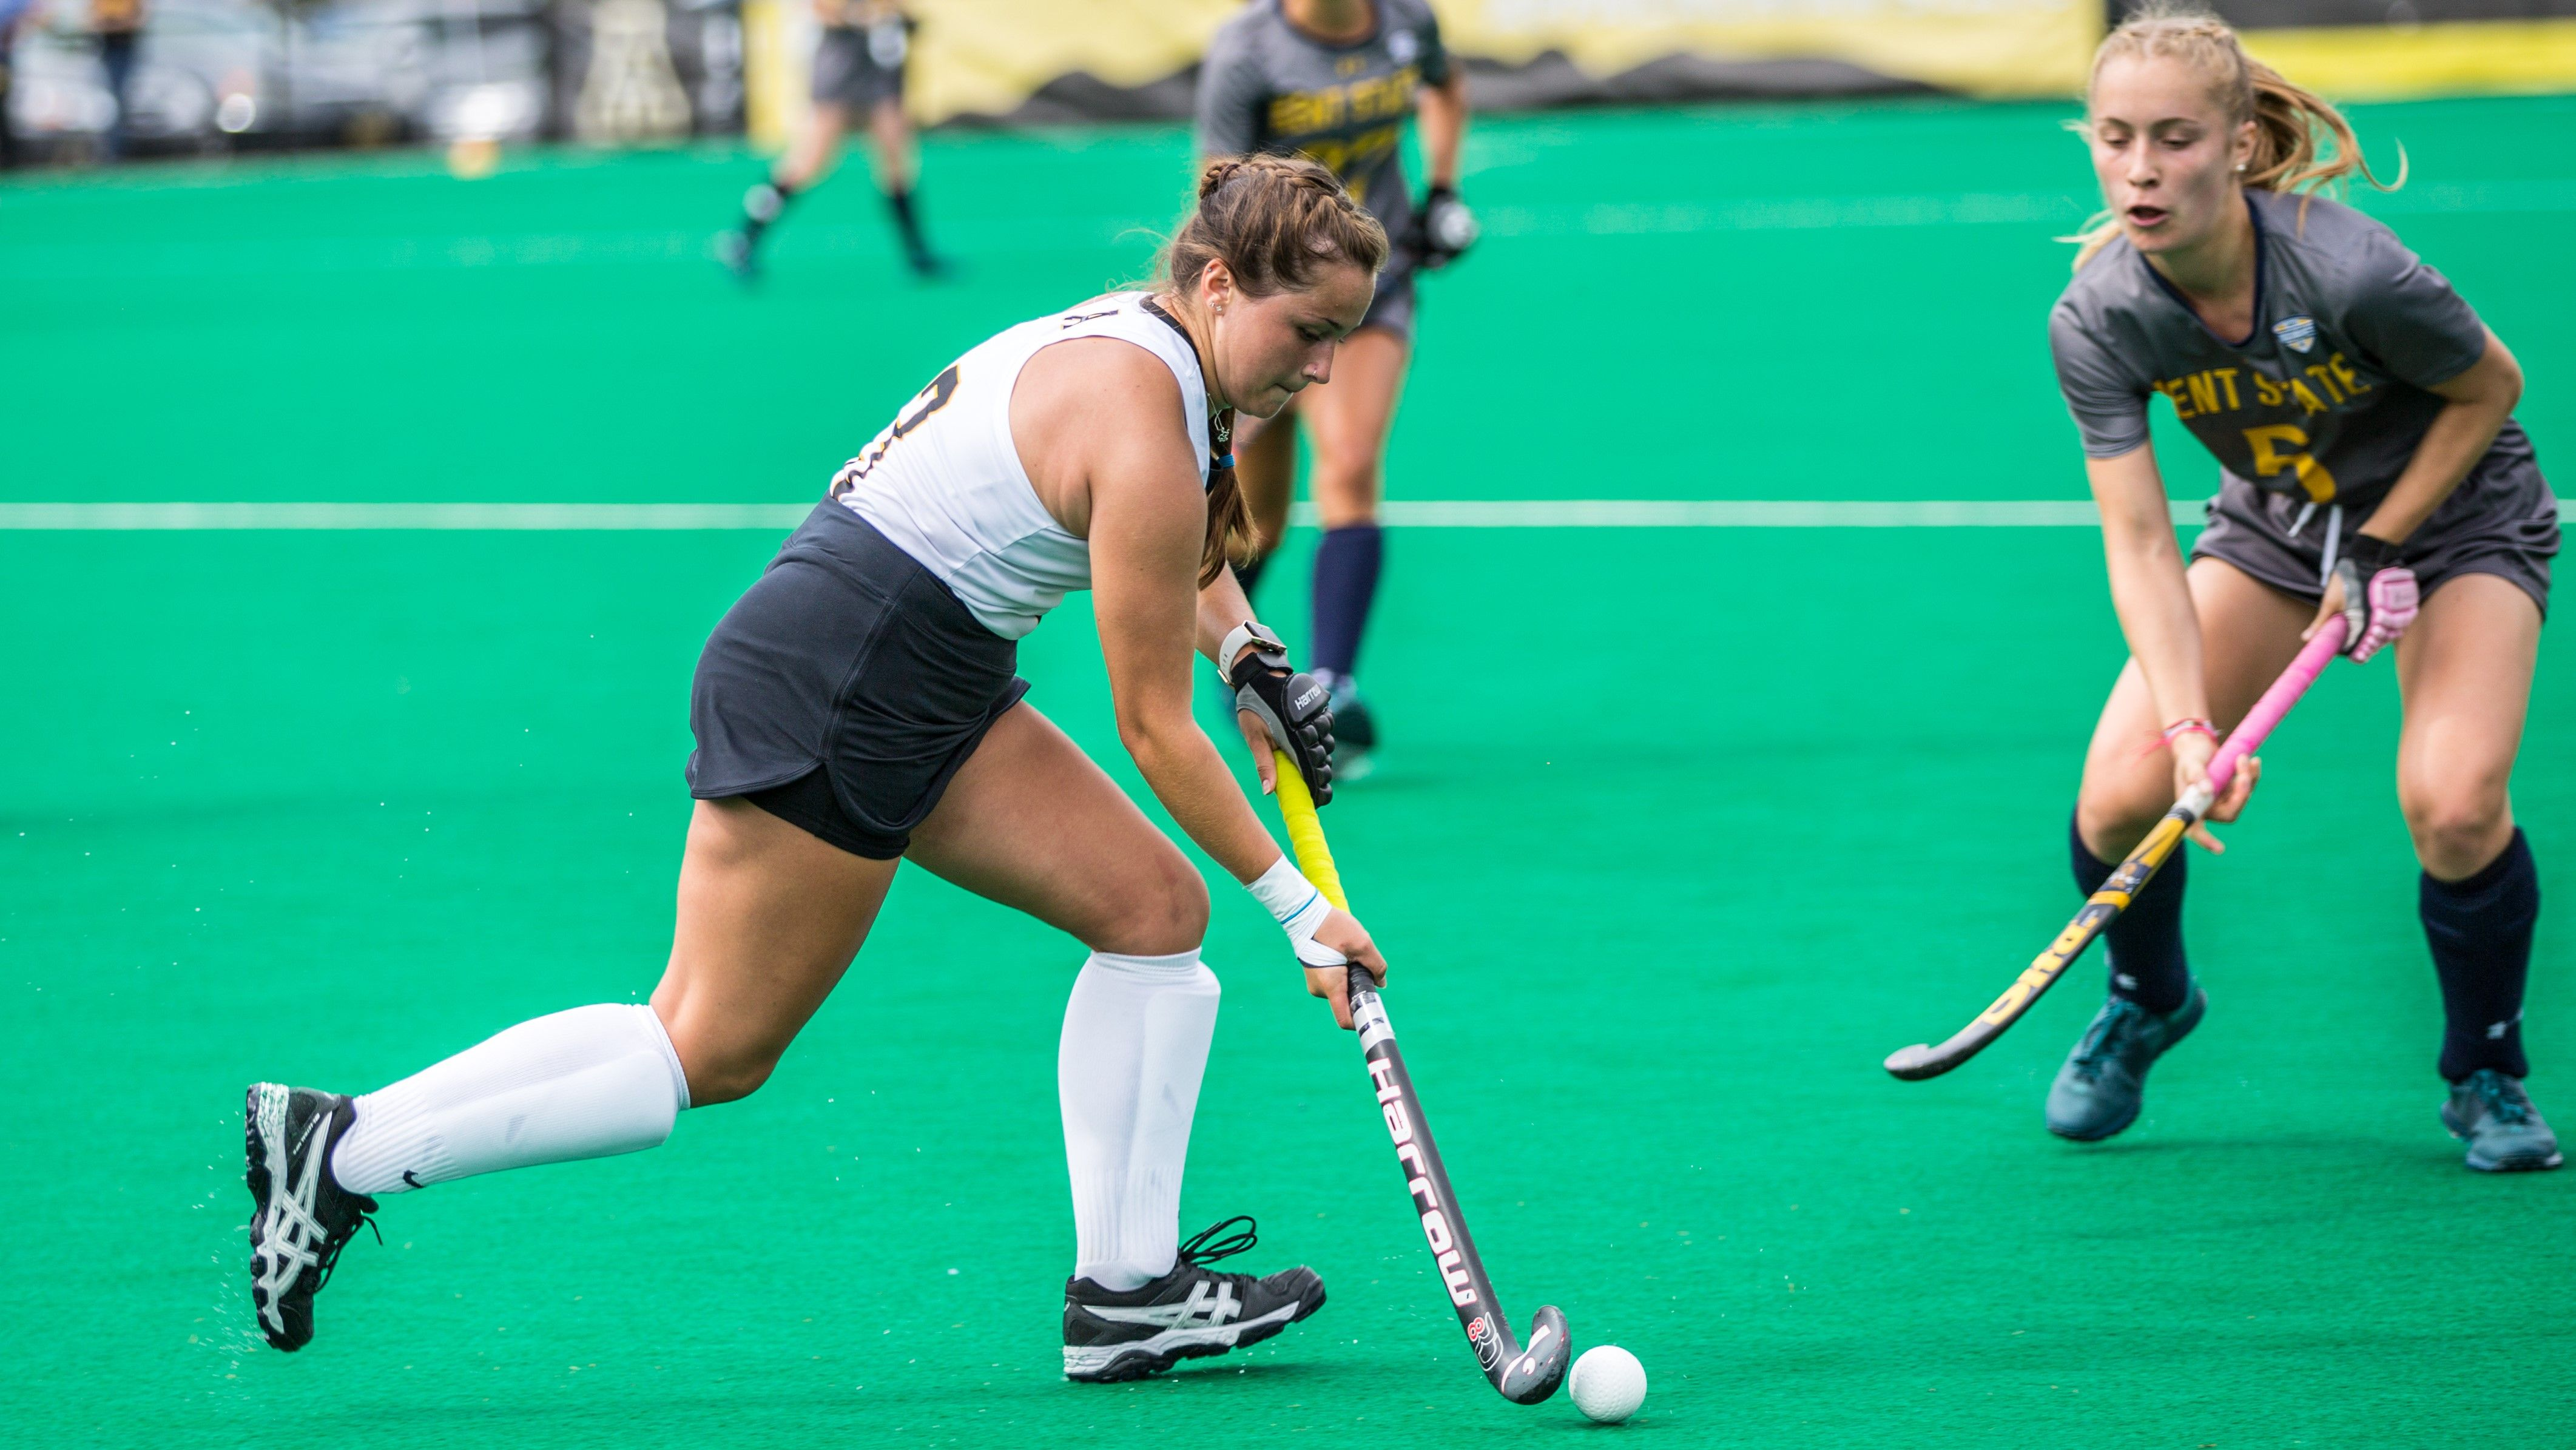 Hockey Lifeisworth Com Join Us For Some Truly Amazing Content Hockey Tips Hockey Tips Articles Hockey Tips For Ki Field Hockey Hockey Hockey Coach